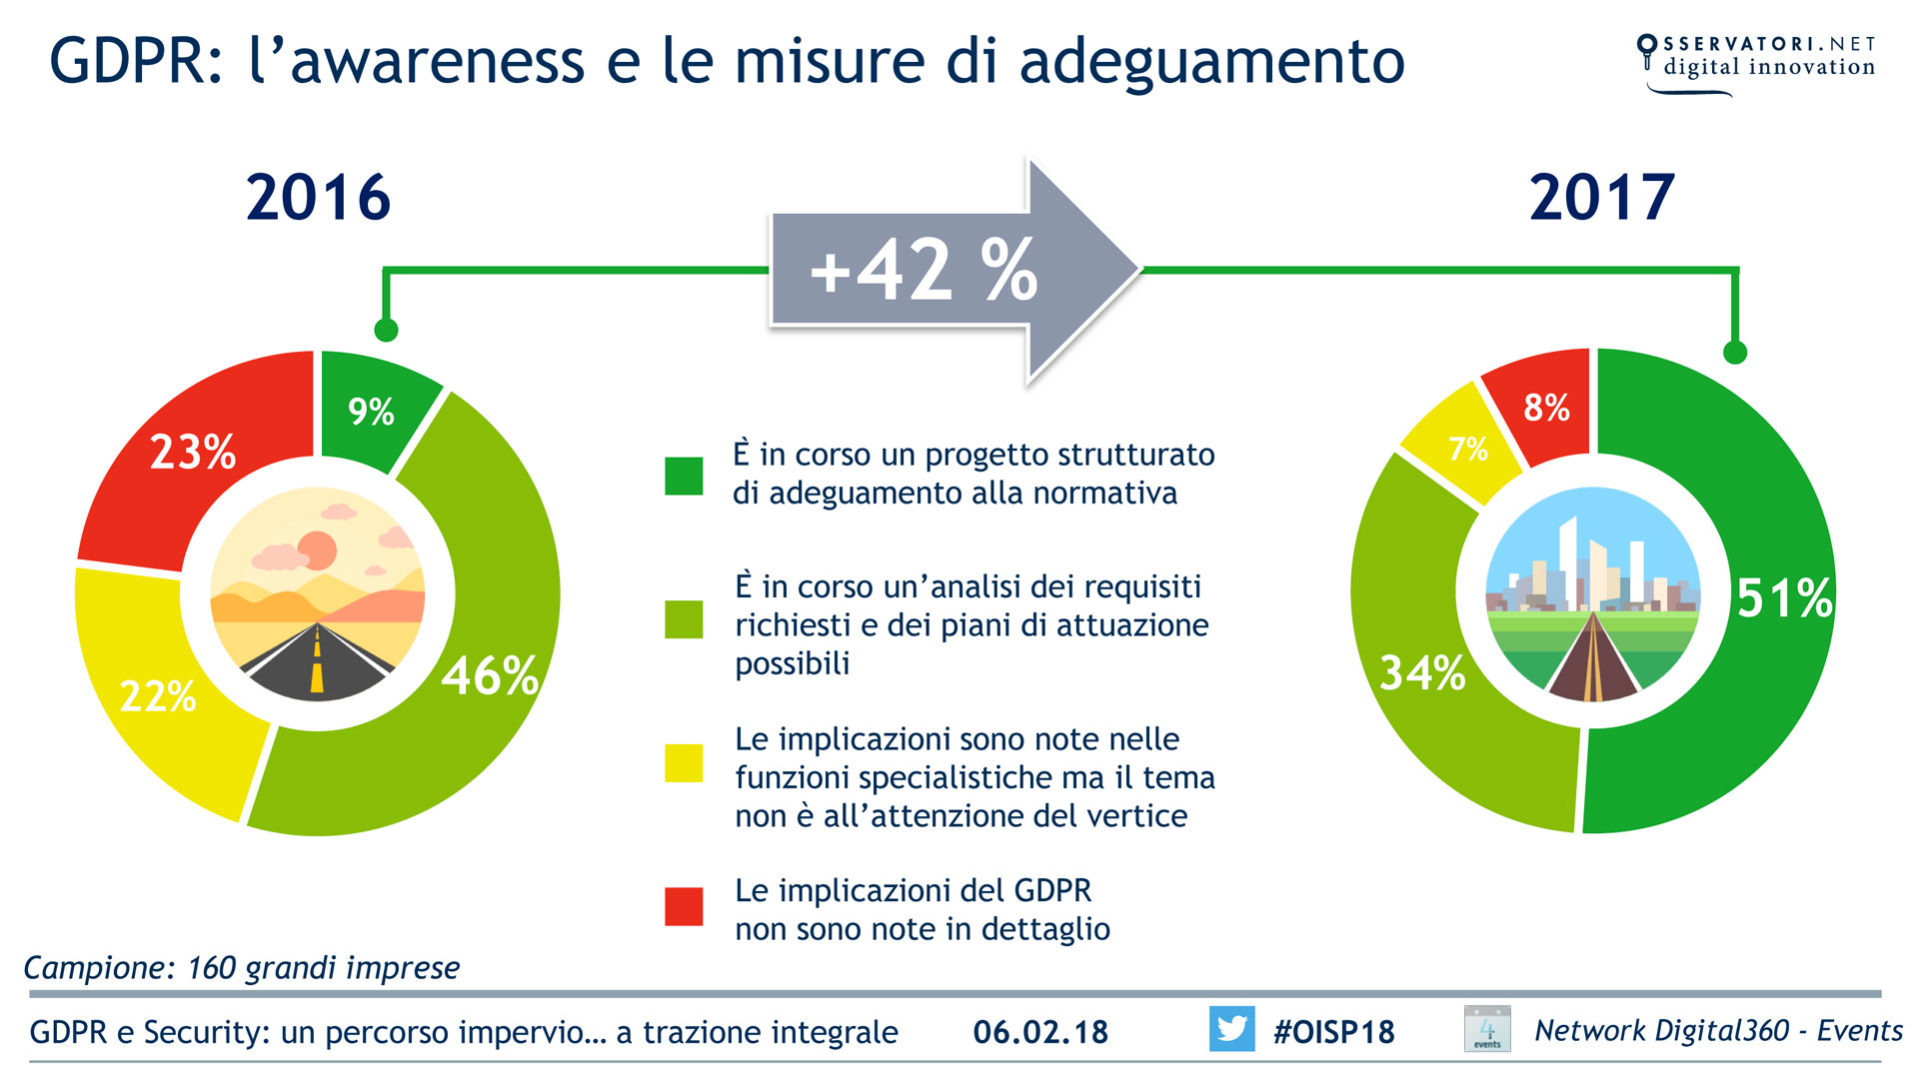 GDPR awareness e misure di adeguamento